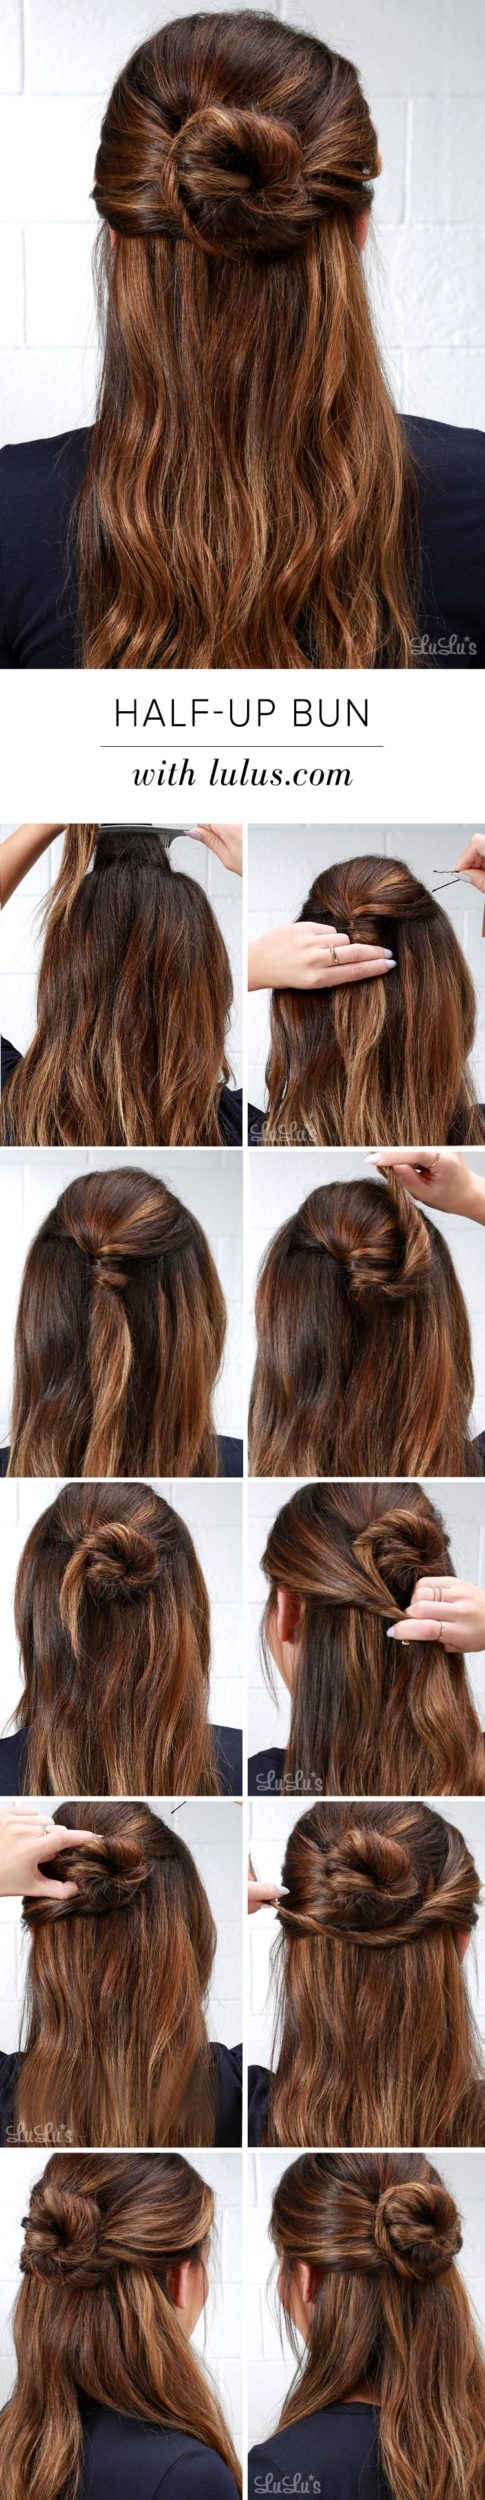 Make The Perfect Half –Up Bun: 10 Ways To Do It